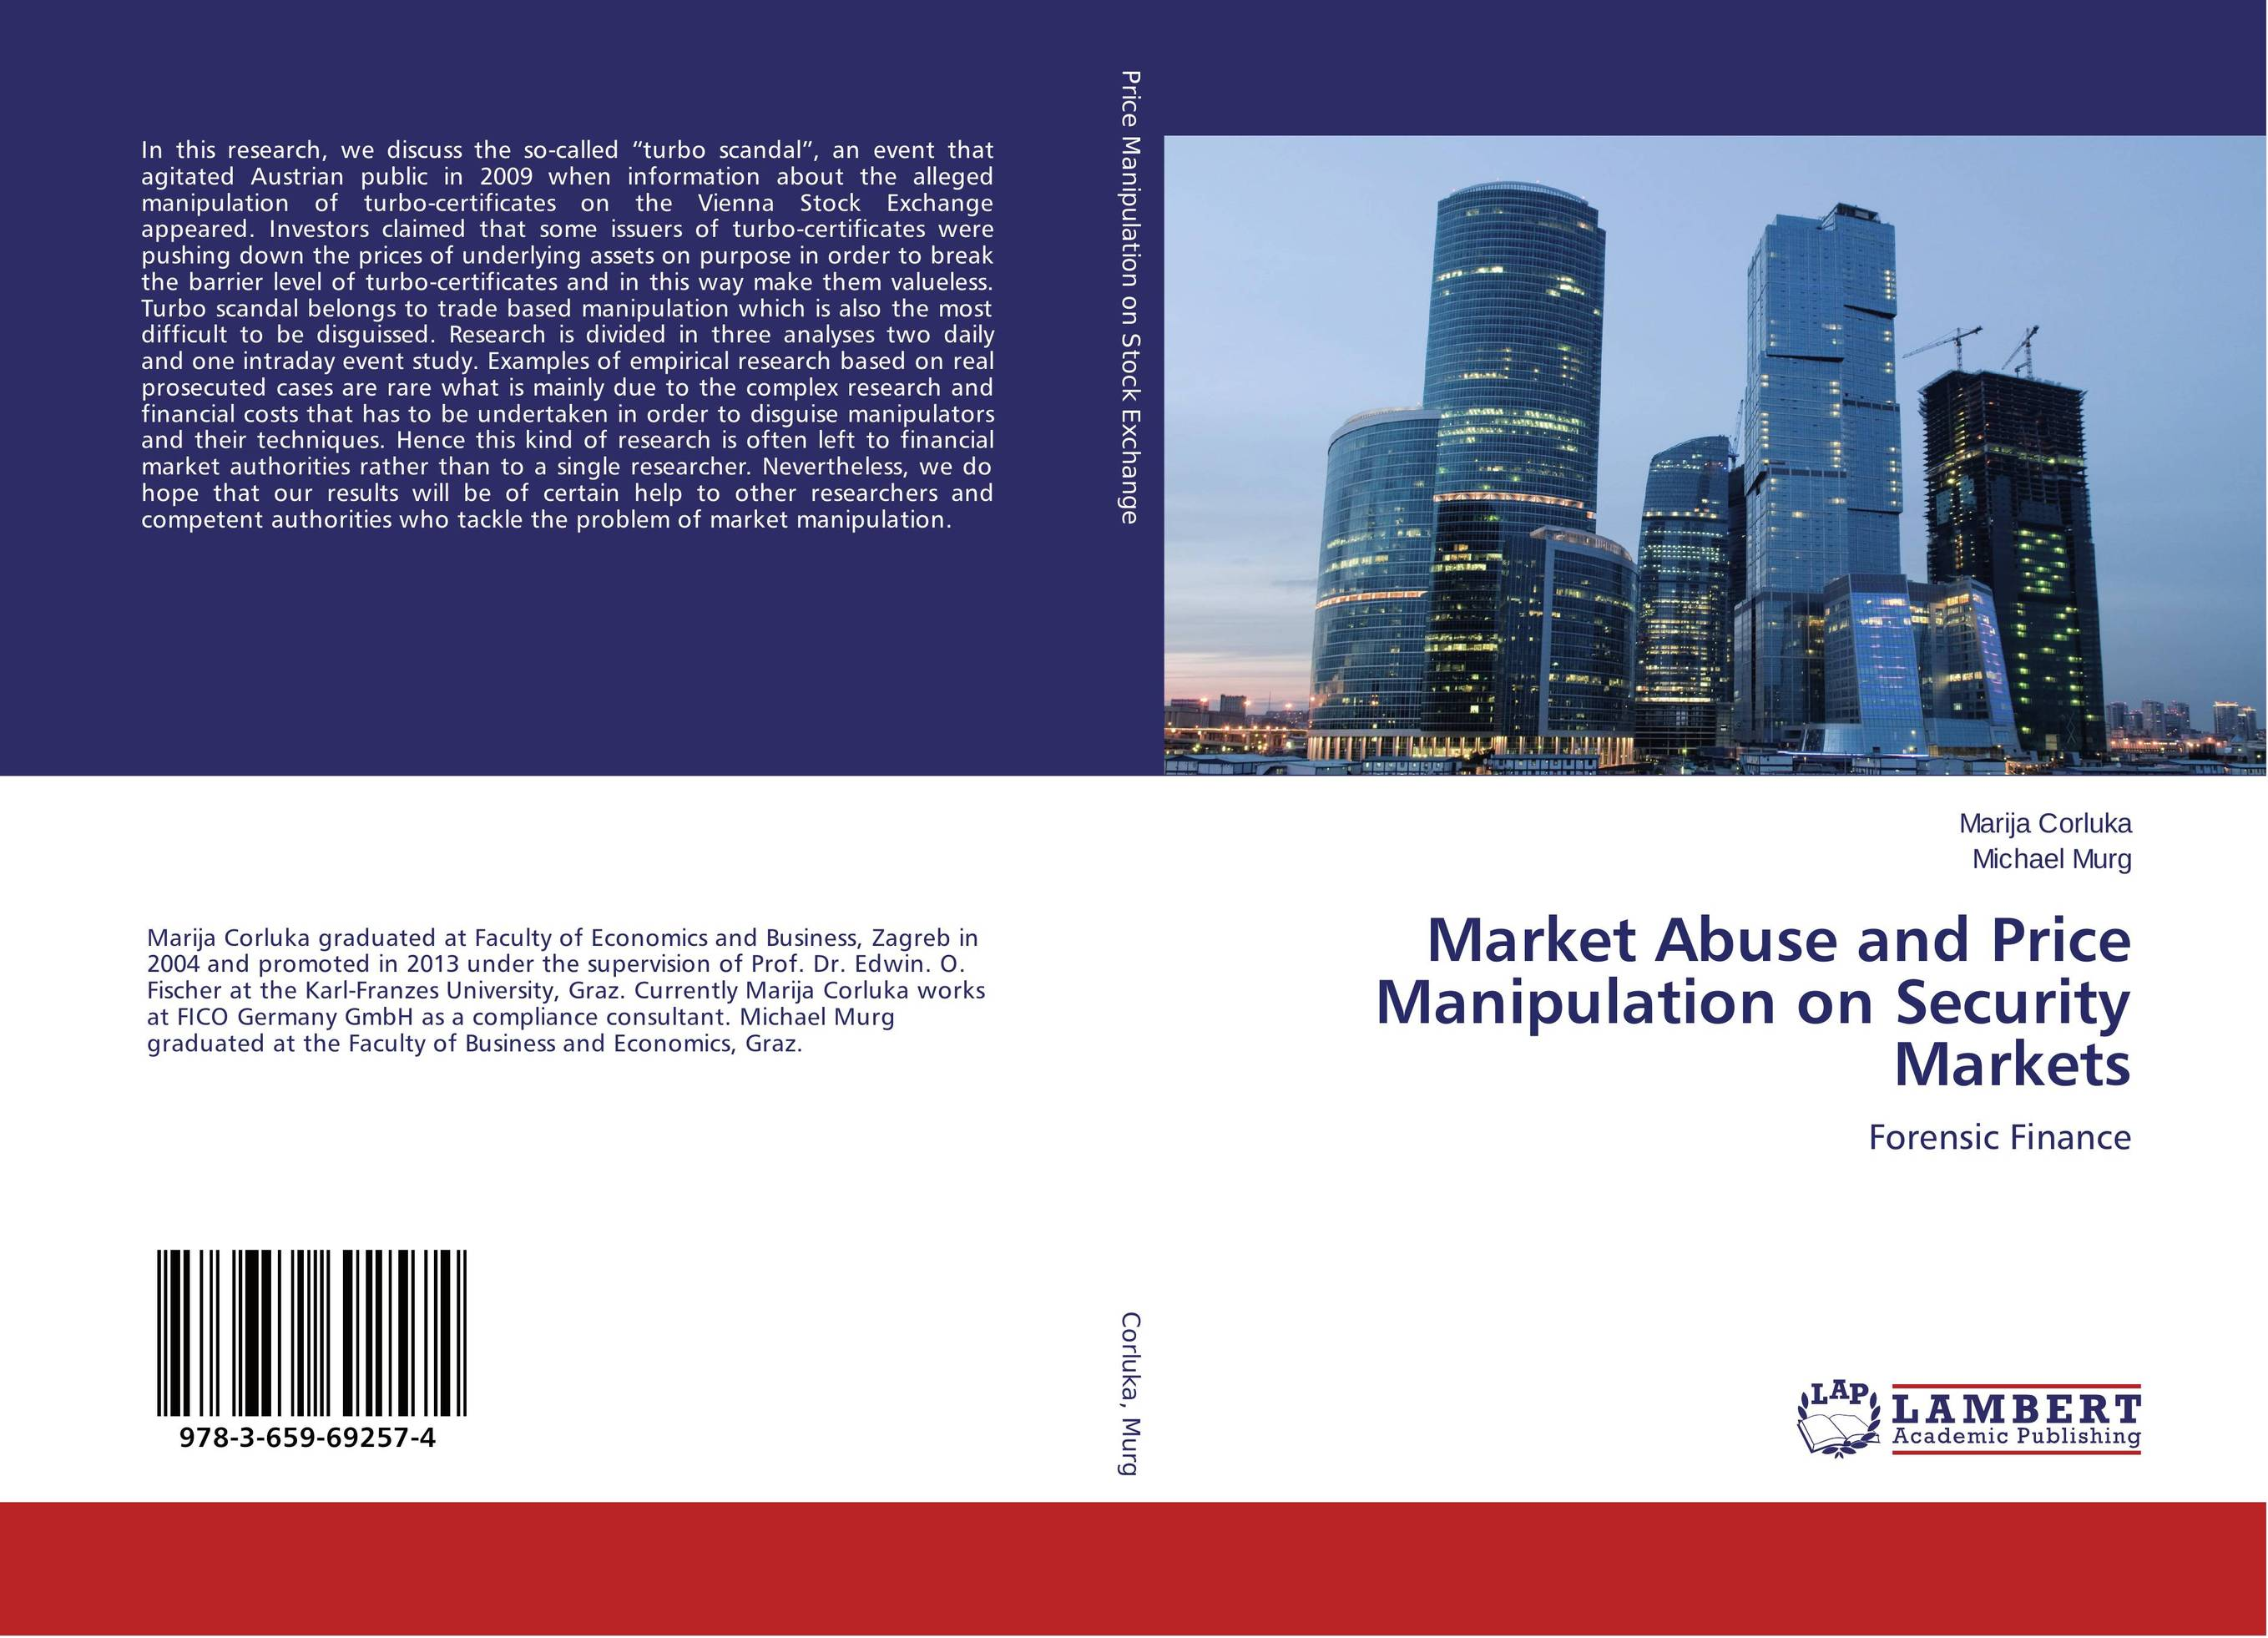 Market Abuse and Price Manipulation on Security Markets